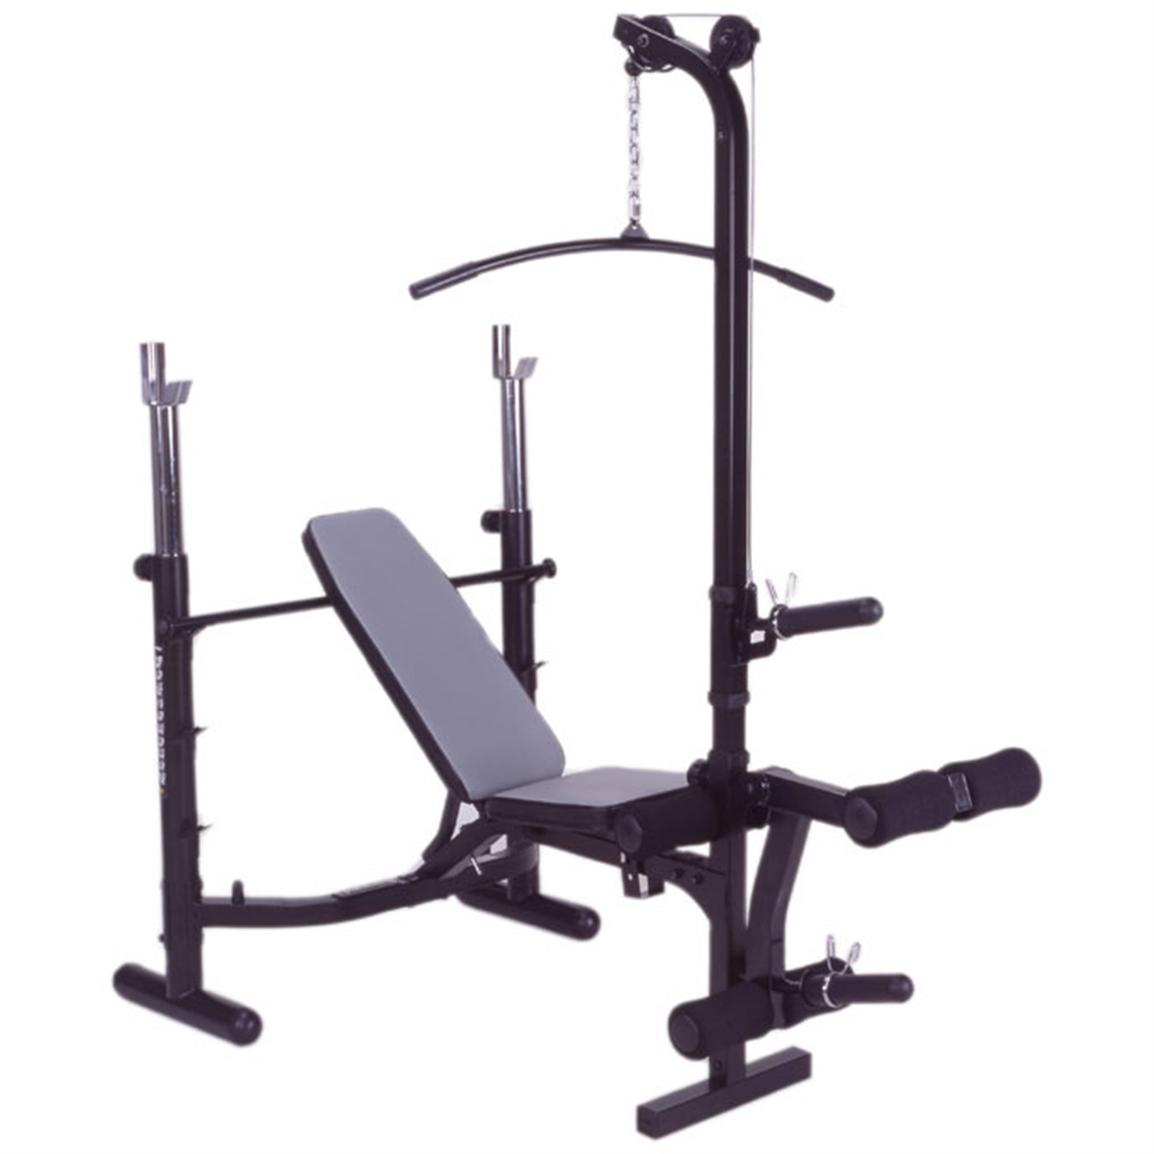 Powerhouse Weight Bench | Impex Powerhouse Weight Bench | Weight Benches for Sale